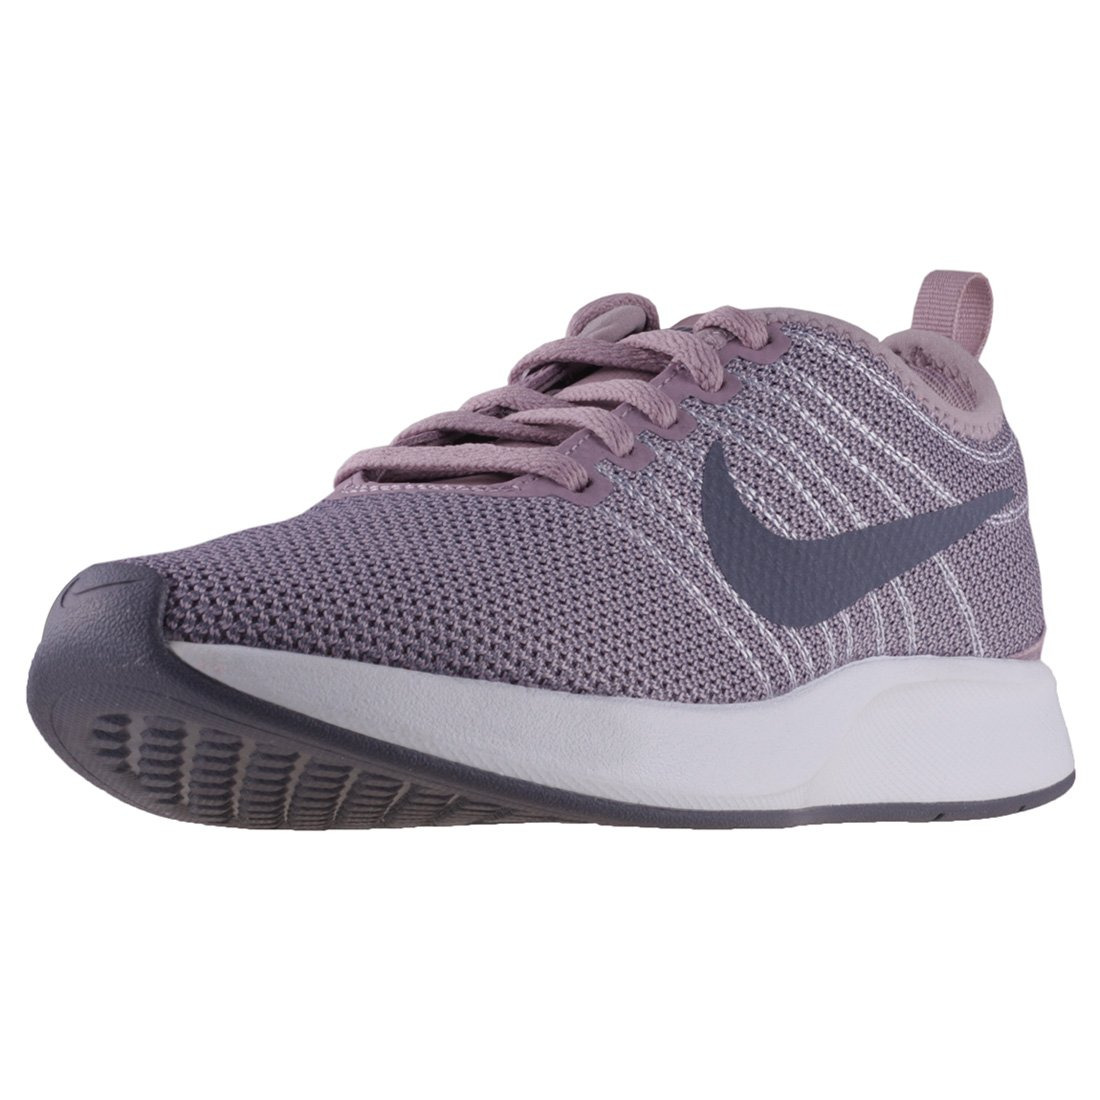 15a07452ec443 Nike Dualtone Racer Womens Trainers Rose Anthracite - 5.5 UK: Amazon.co.uk:  Shoes & Bags